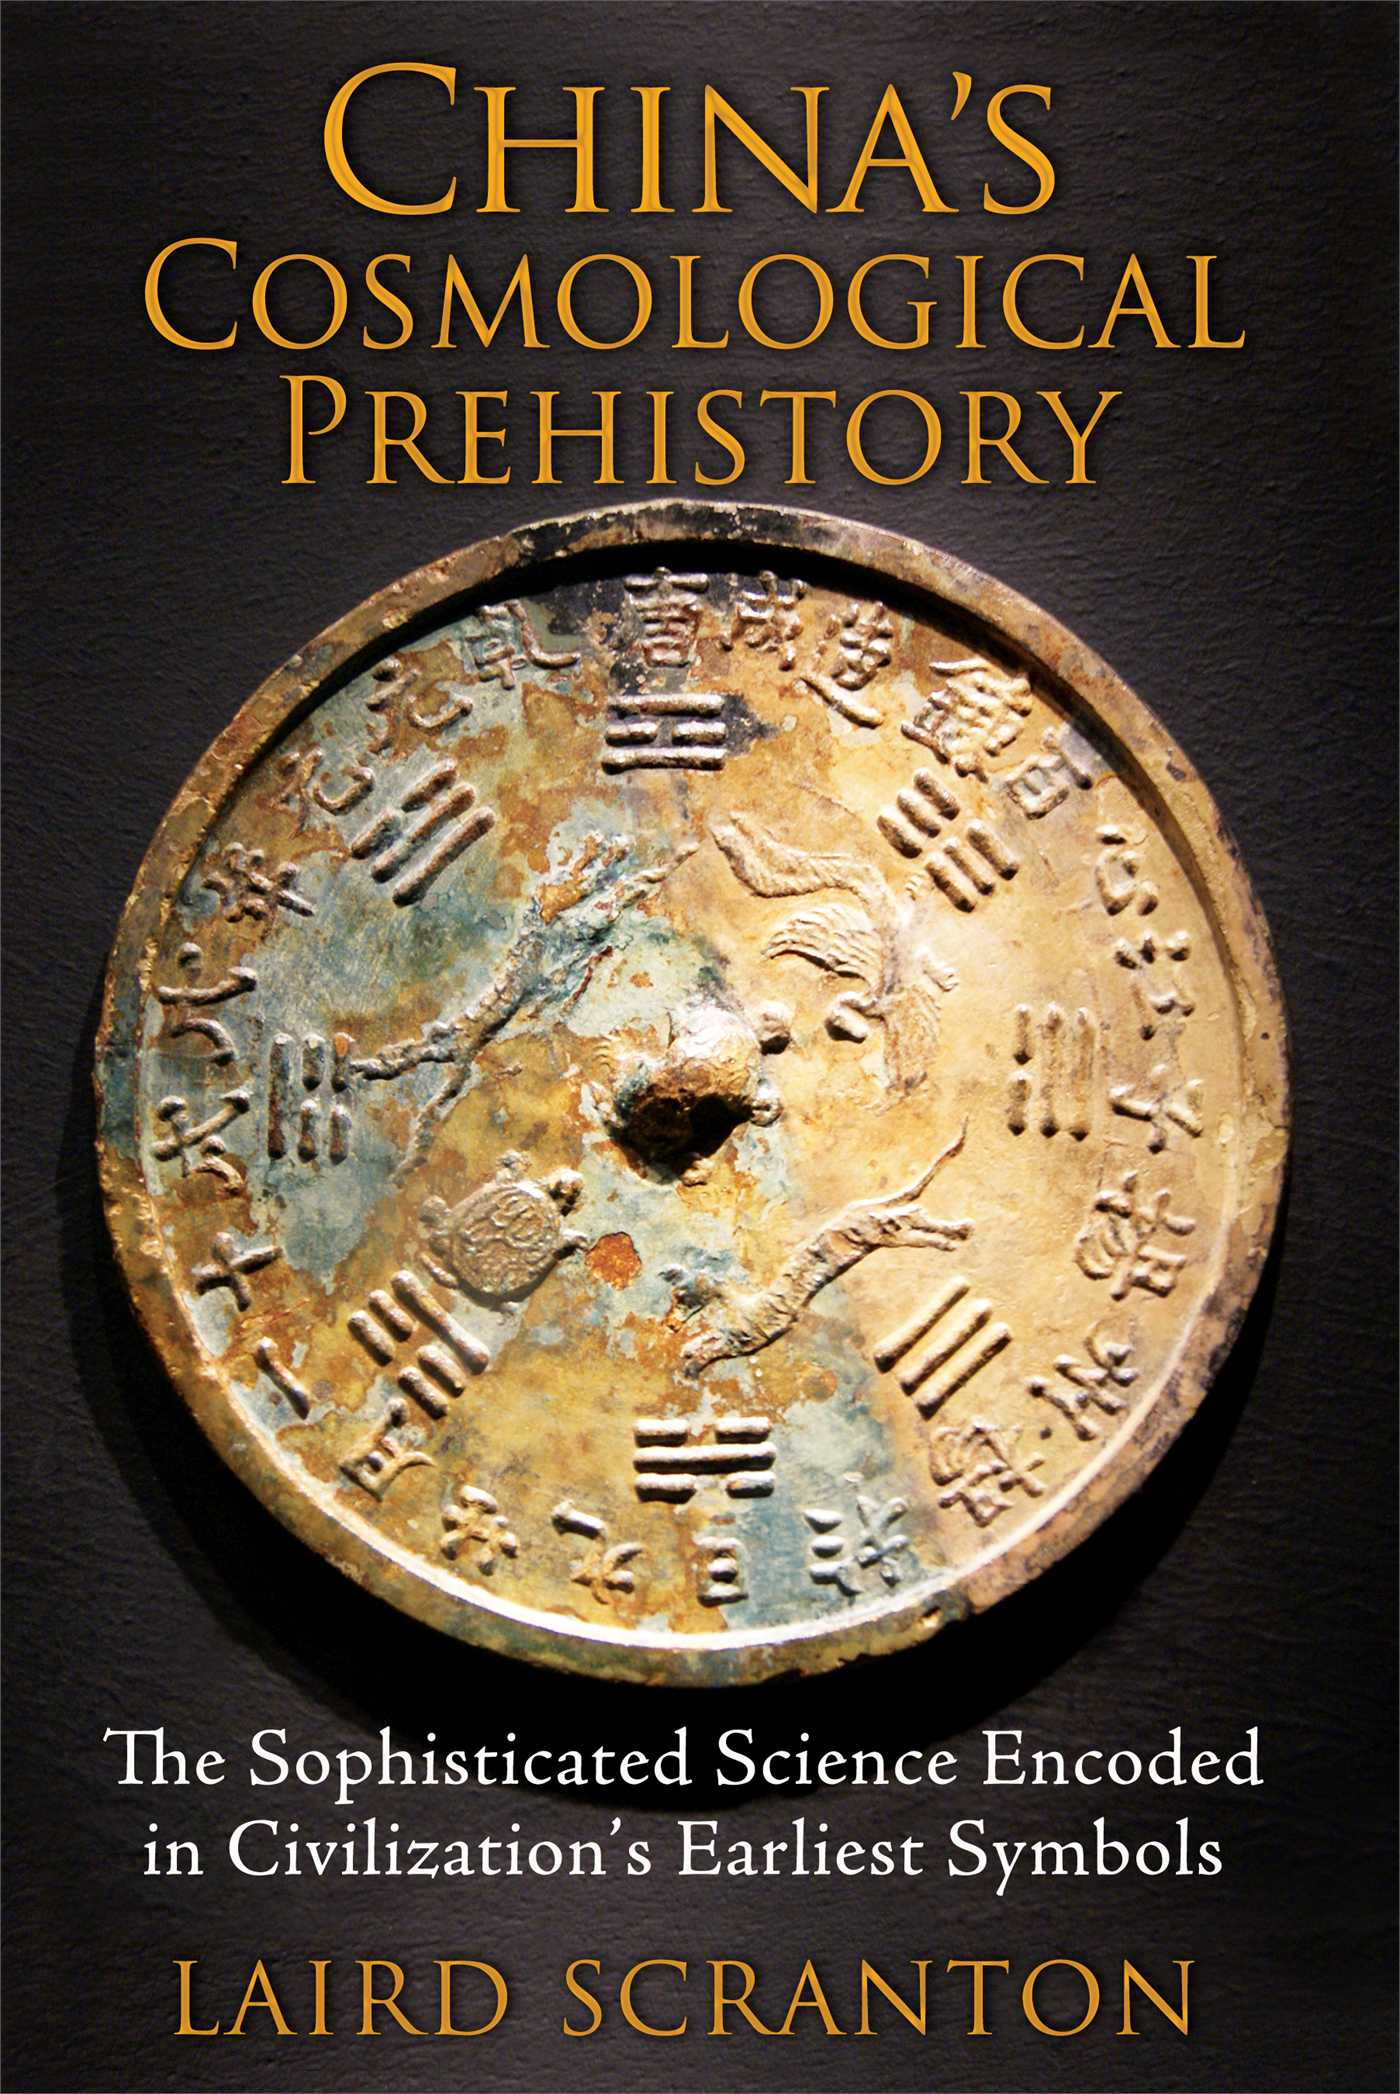 Chinas cosmological prehistory book by laird scranton china s cosmological prehistory 9781620553299 hr biocorpaavc Choice Image